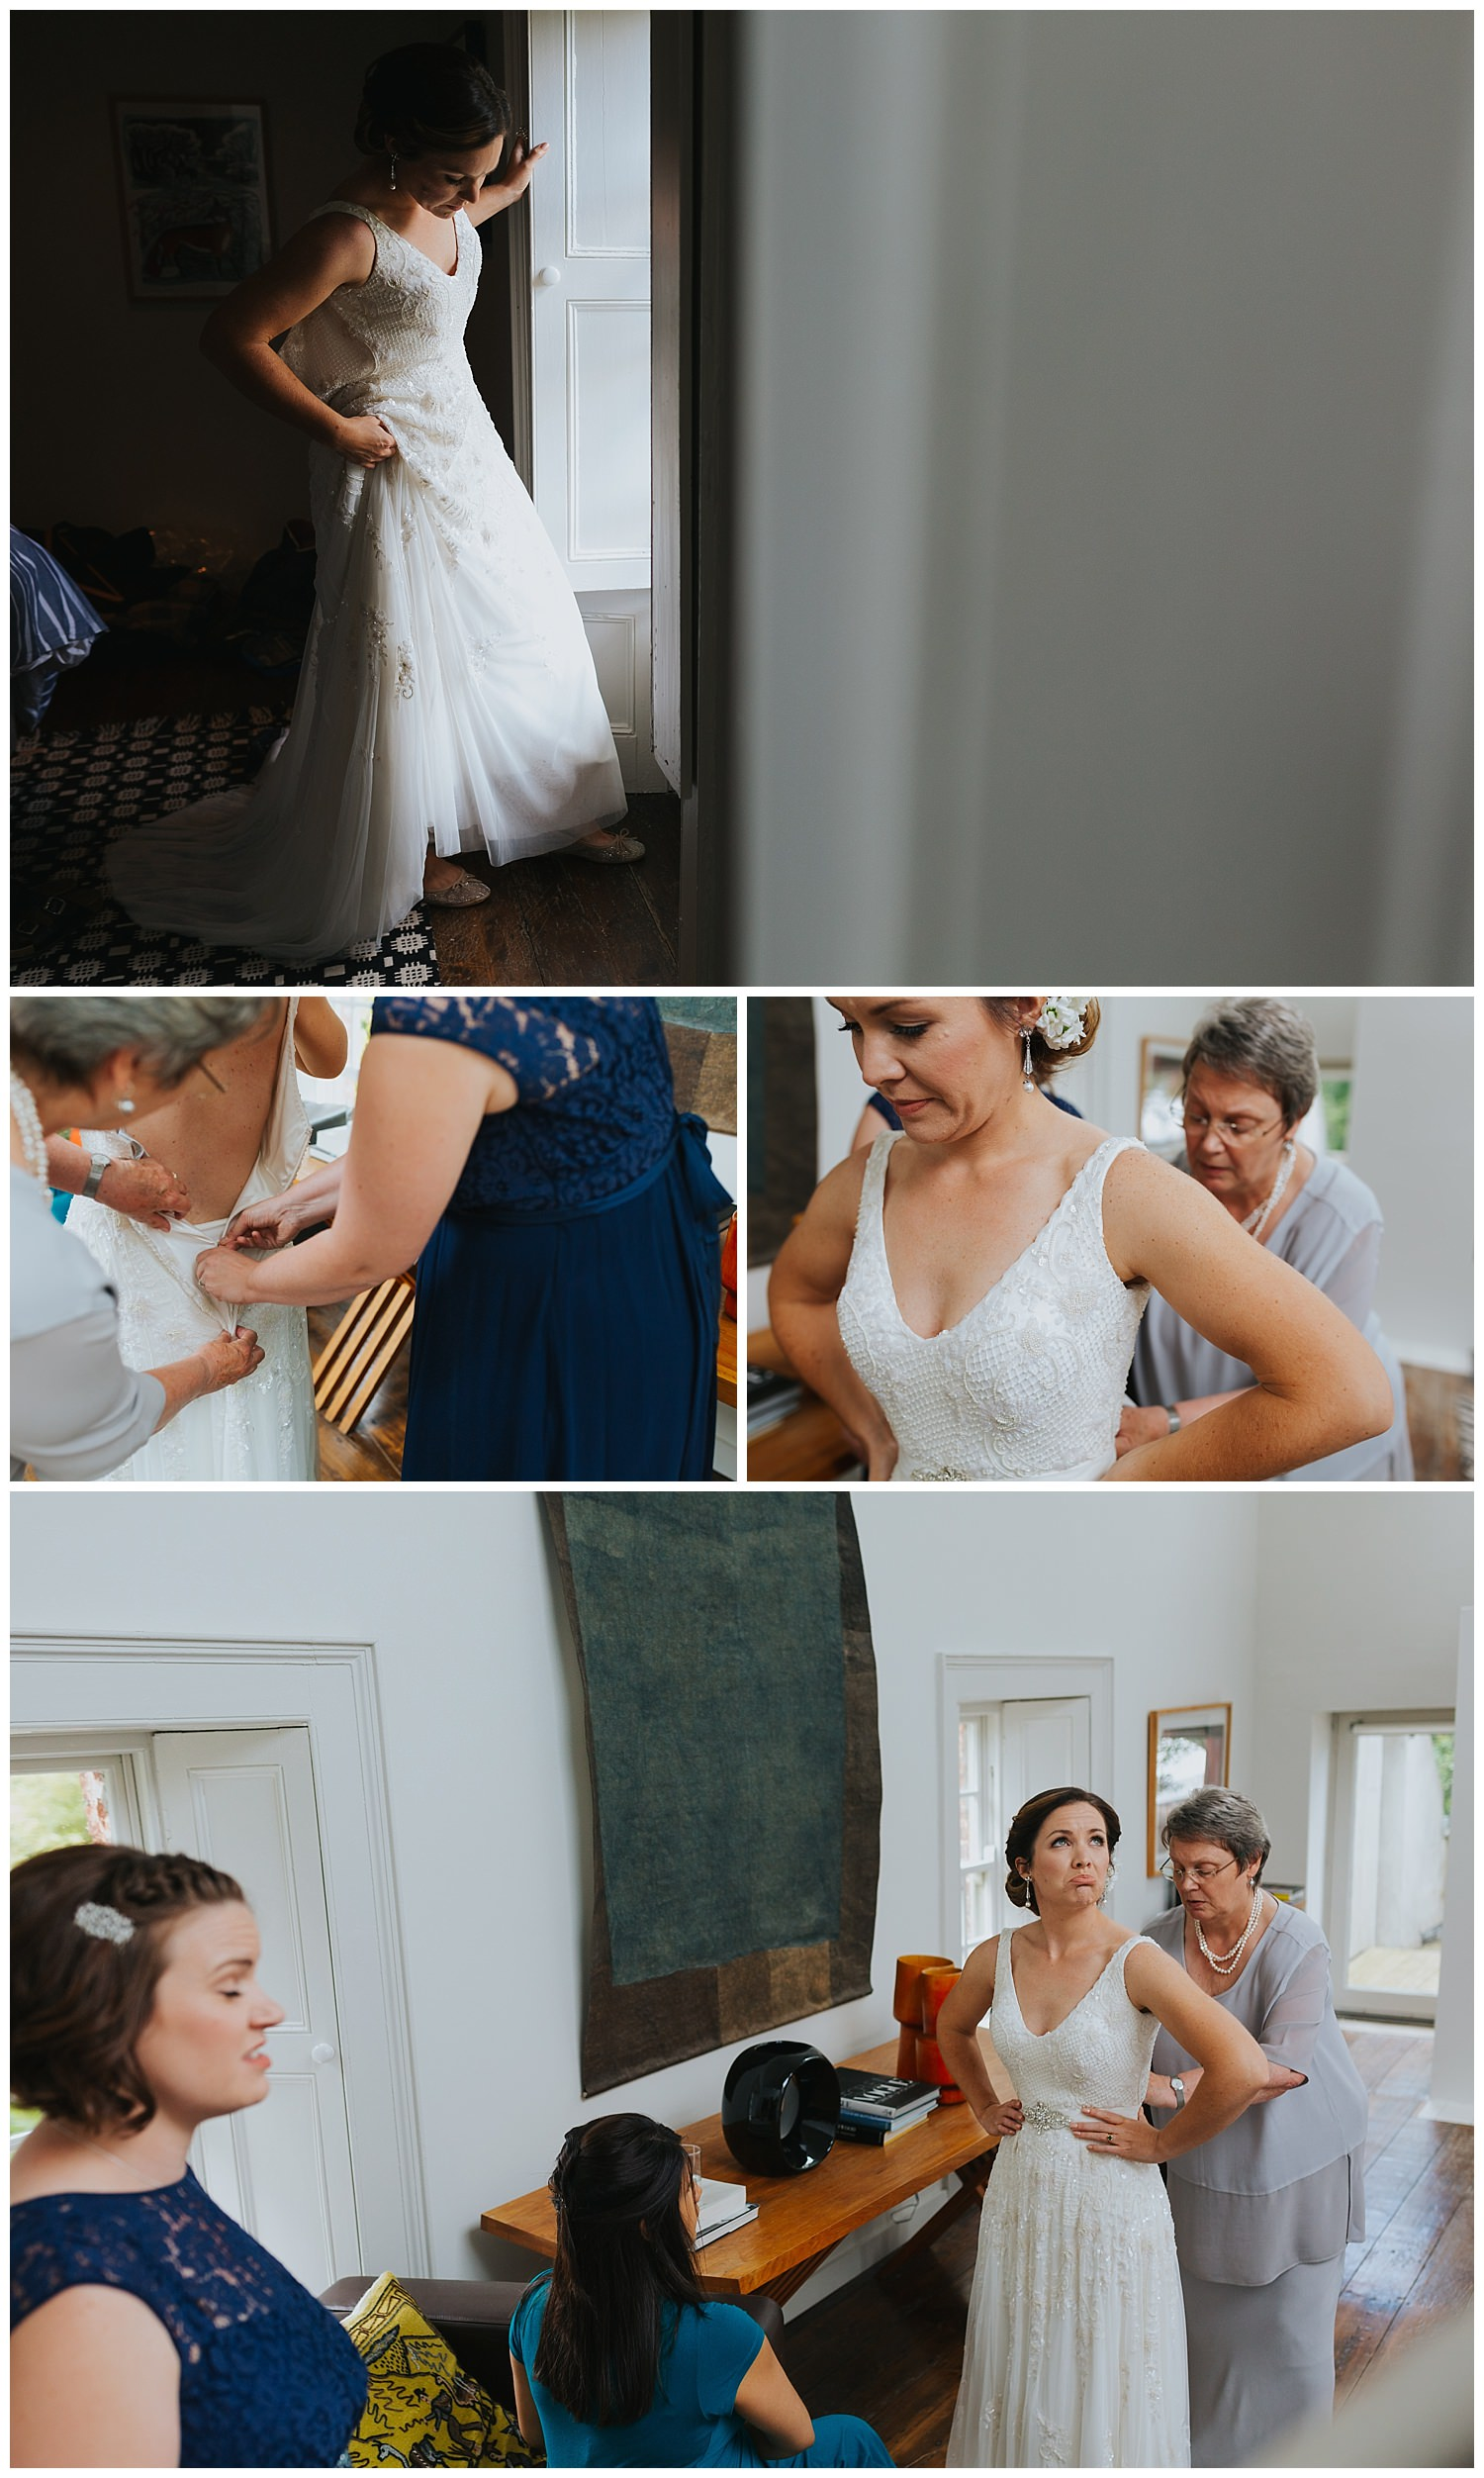 e+t_ballilogue_kilkenny_wedding_photographer_liviafigueiredo_53.jpg